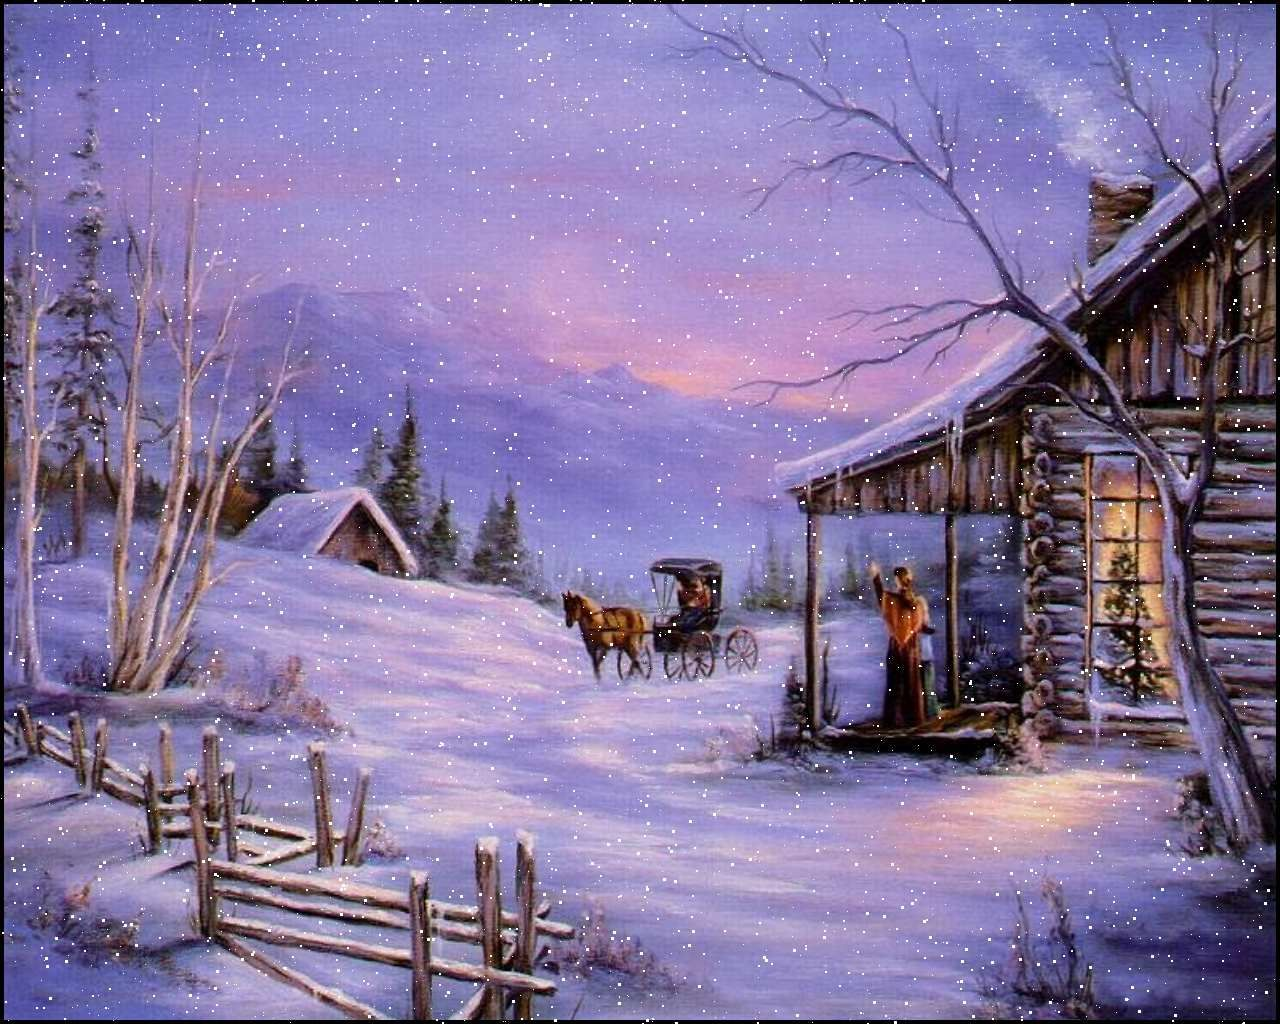 Snowfall Screensaver Fast Five Wallpaper 3d Snow Screensaver 6 0 19 Christmas Landscape Christmas Paintings Cabin Christmas